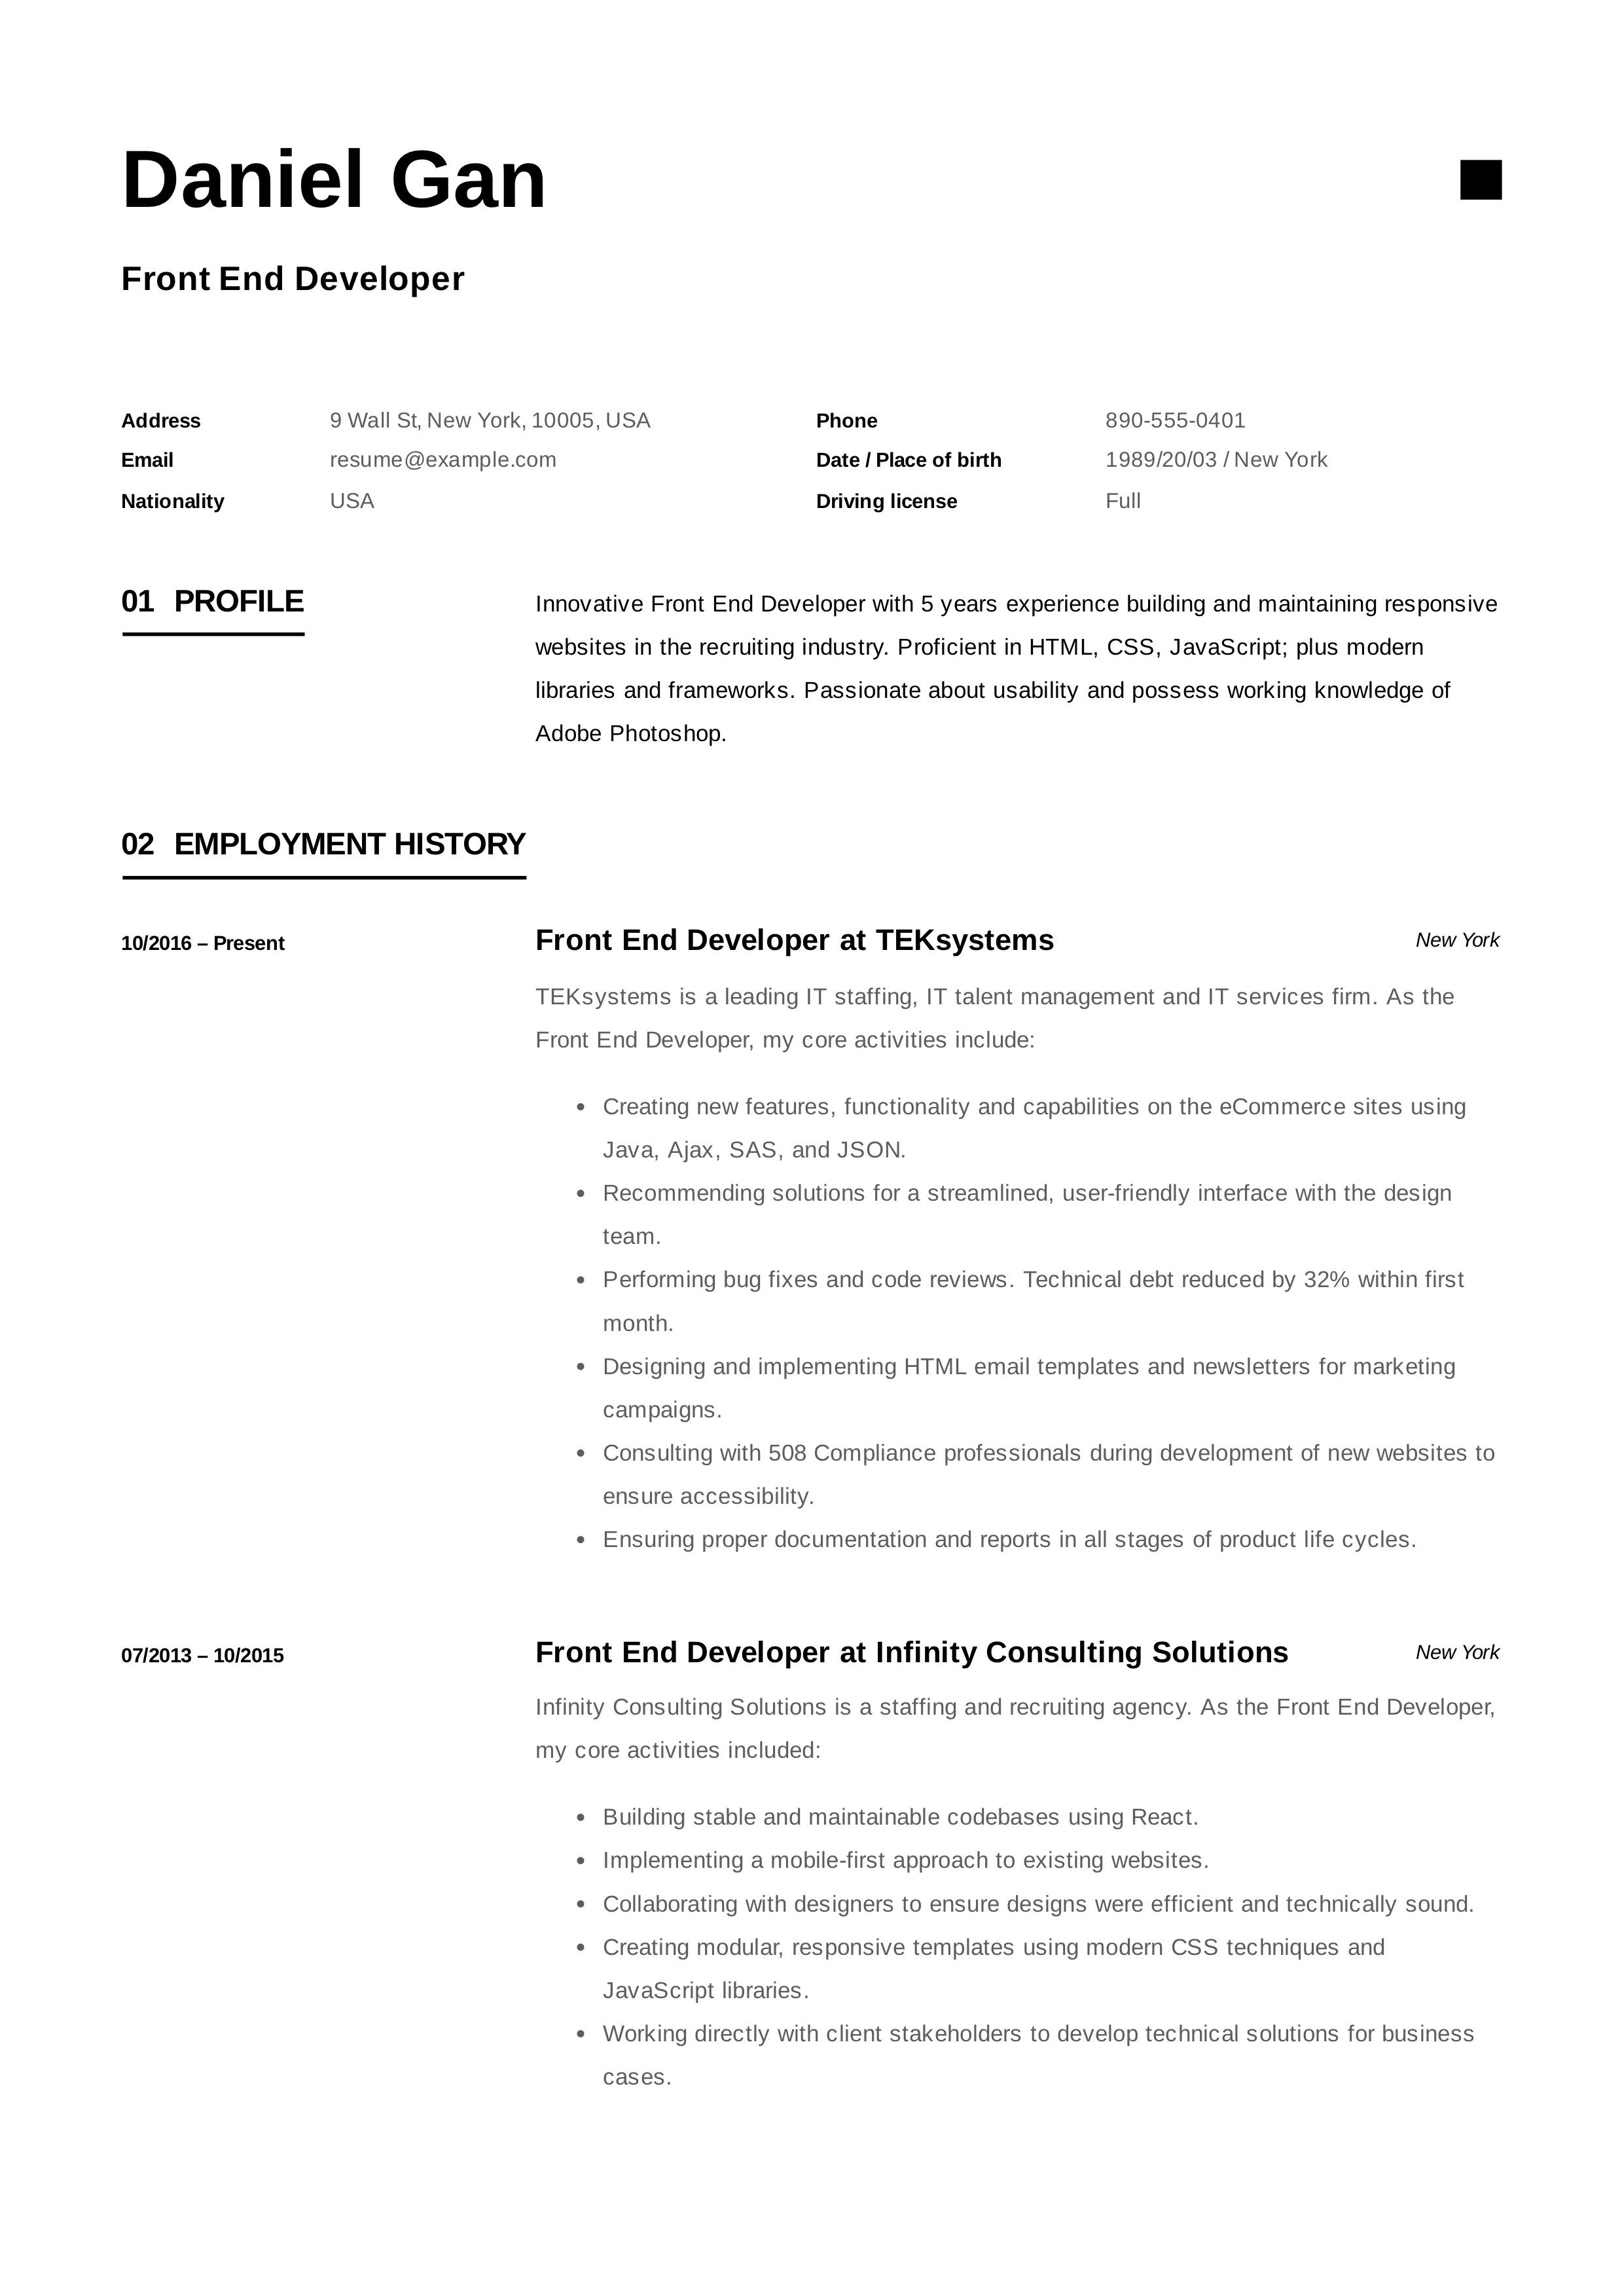 Front End Developer Resume Example Resume Examples Resume Resume Template